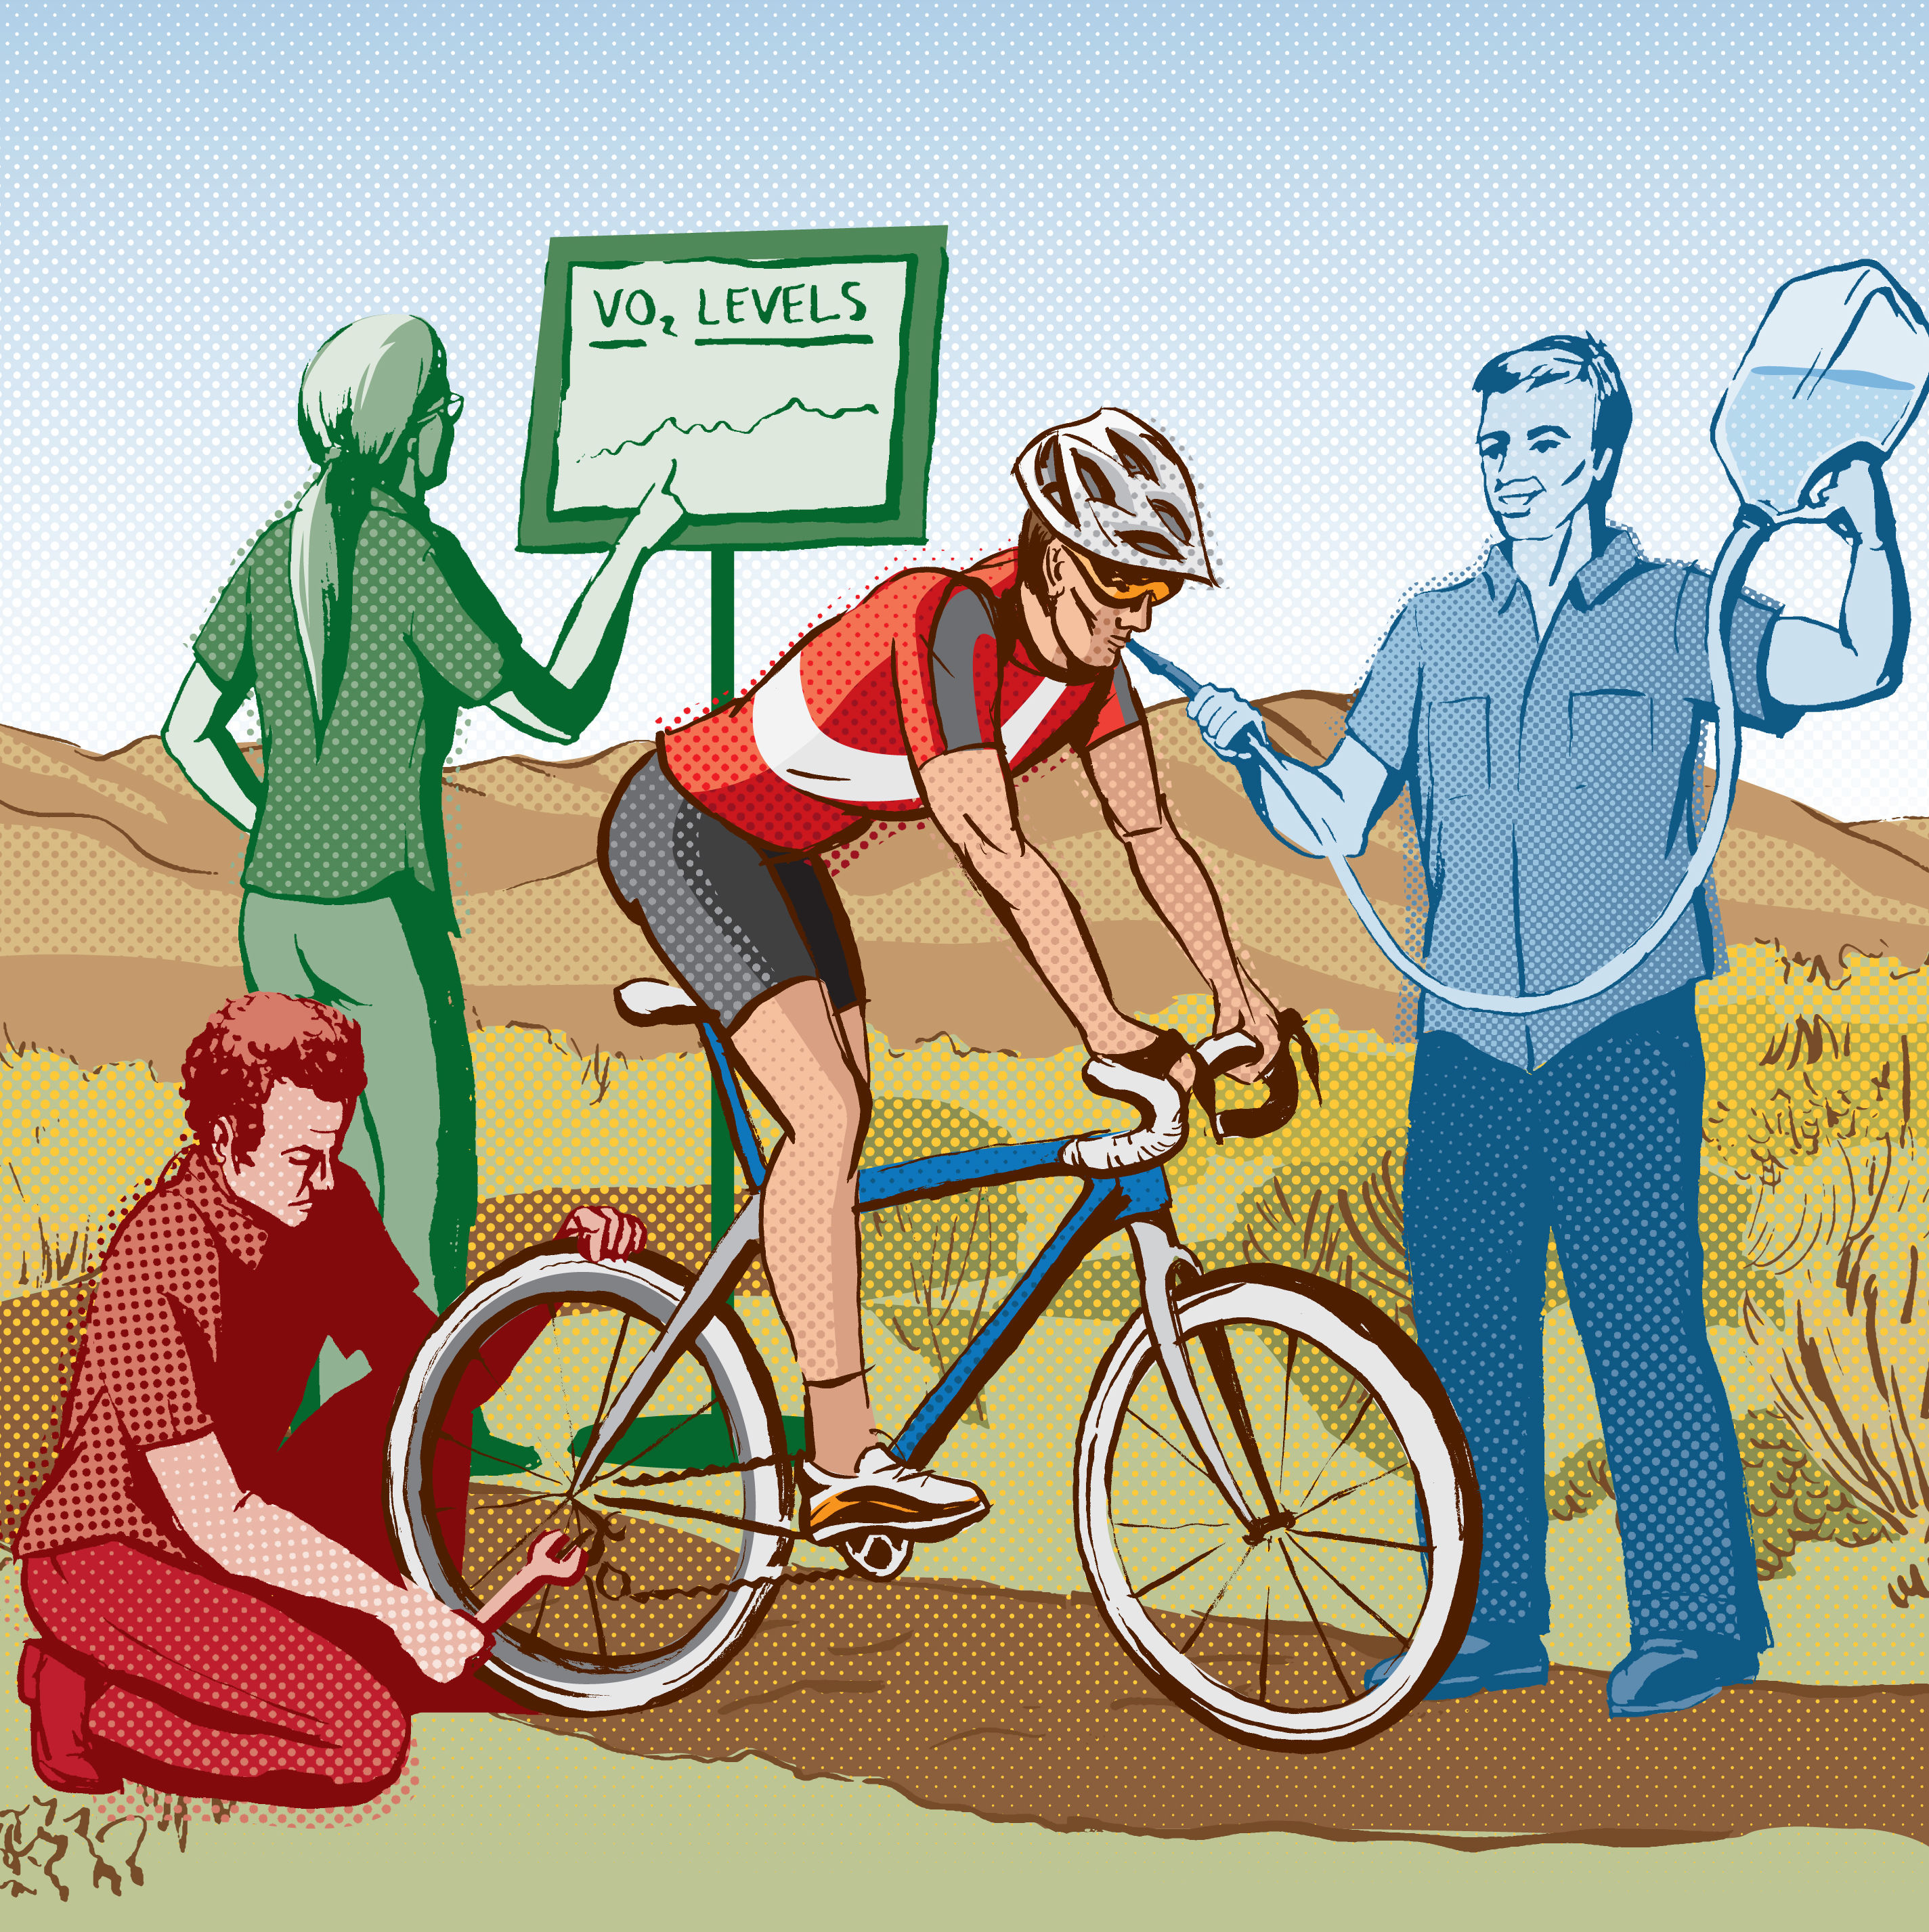 Park city summer 2012 health wellness bike illo 1 fhhgz5